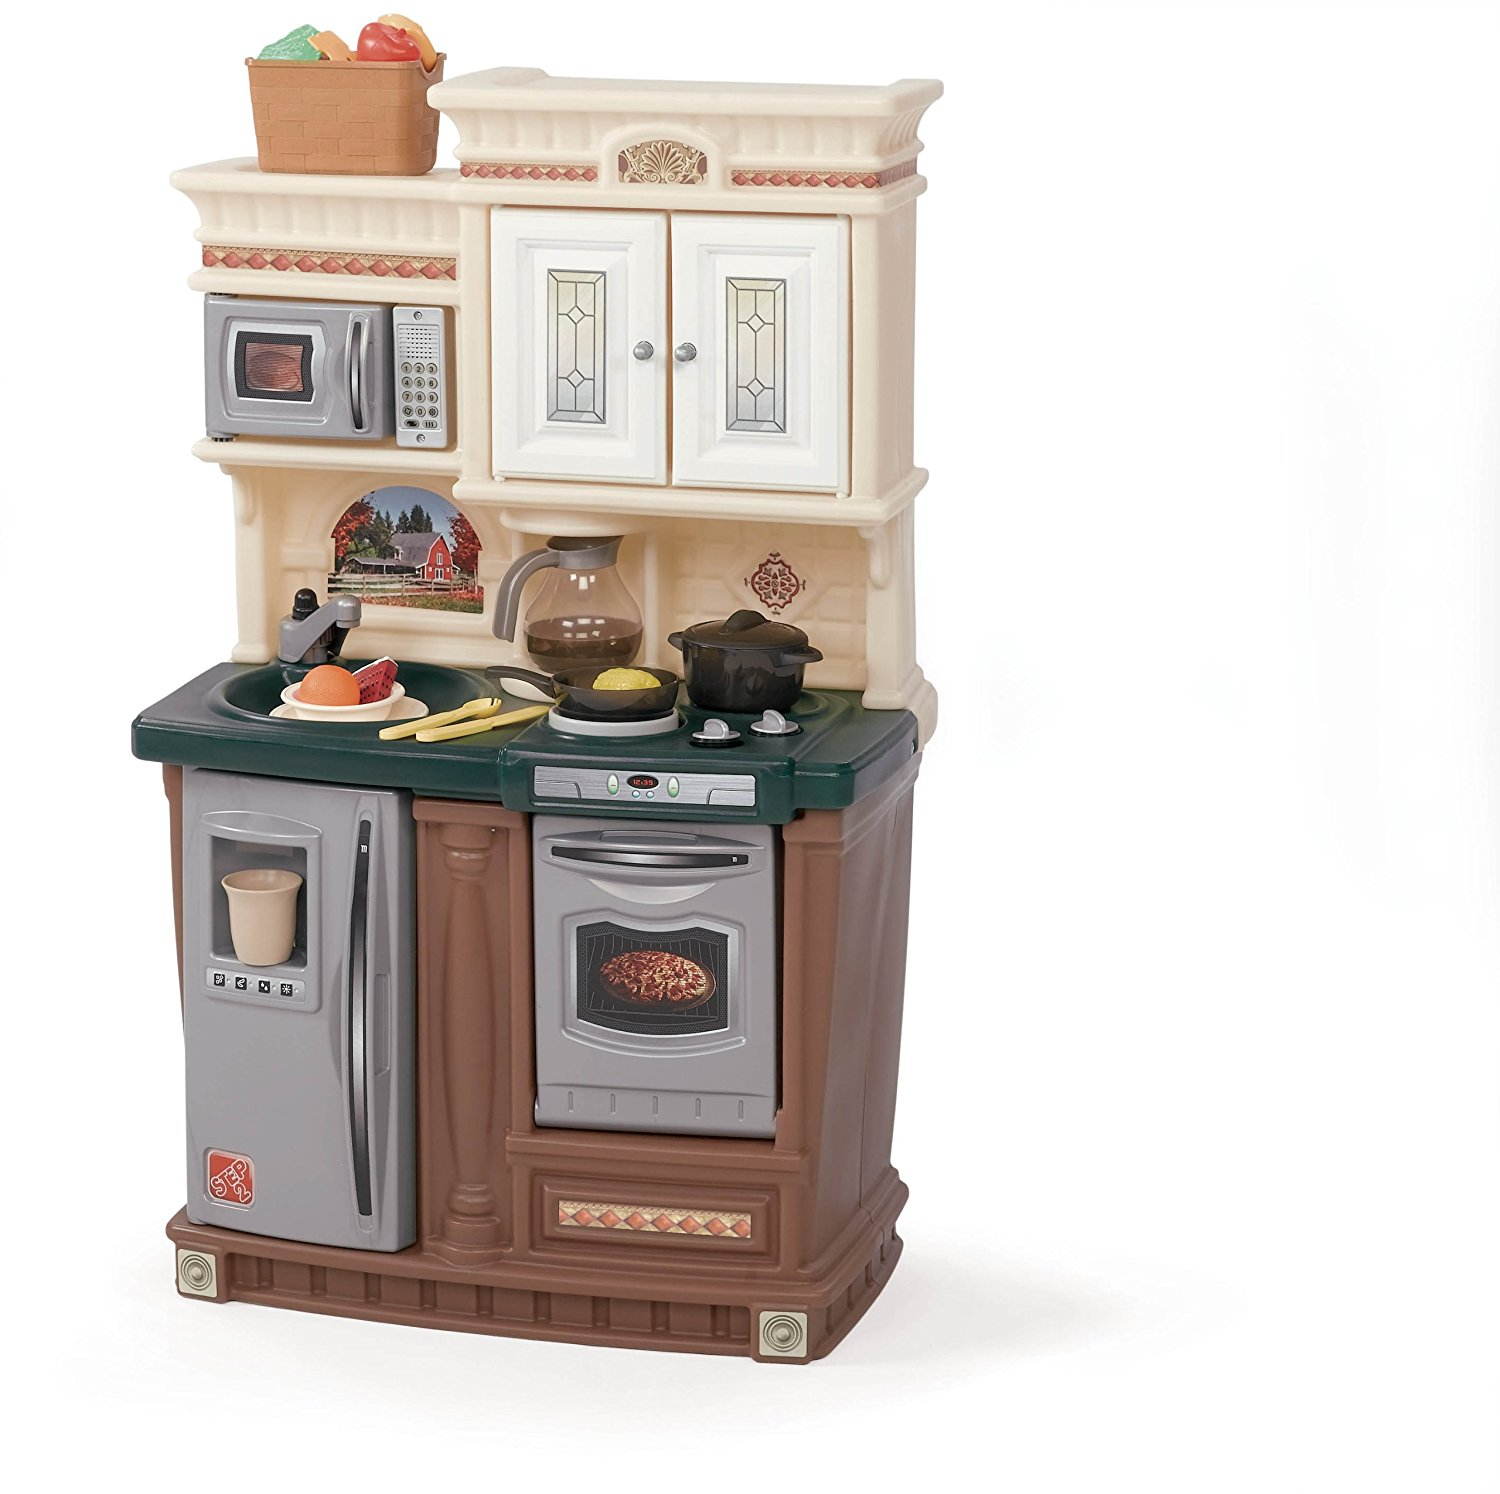 Step2 LifeStyle New Traditions Kitchen Set - Walmart.com